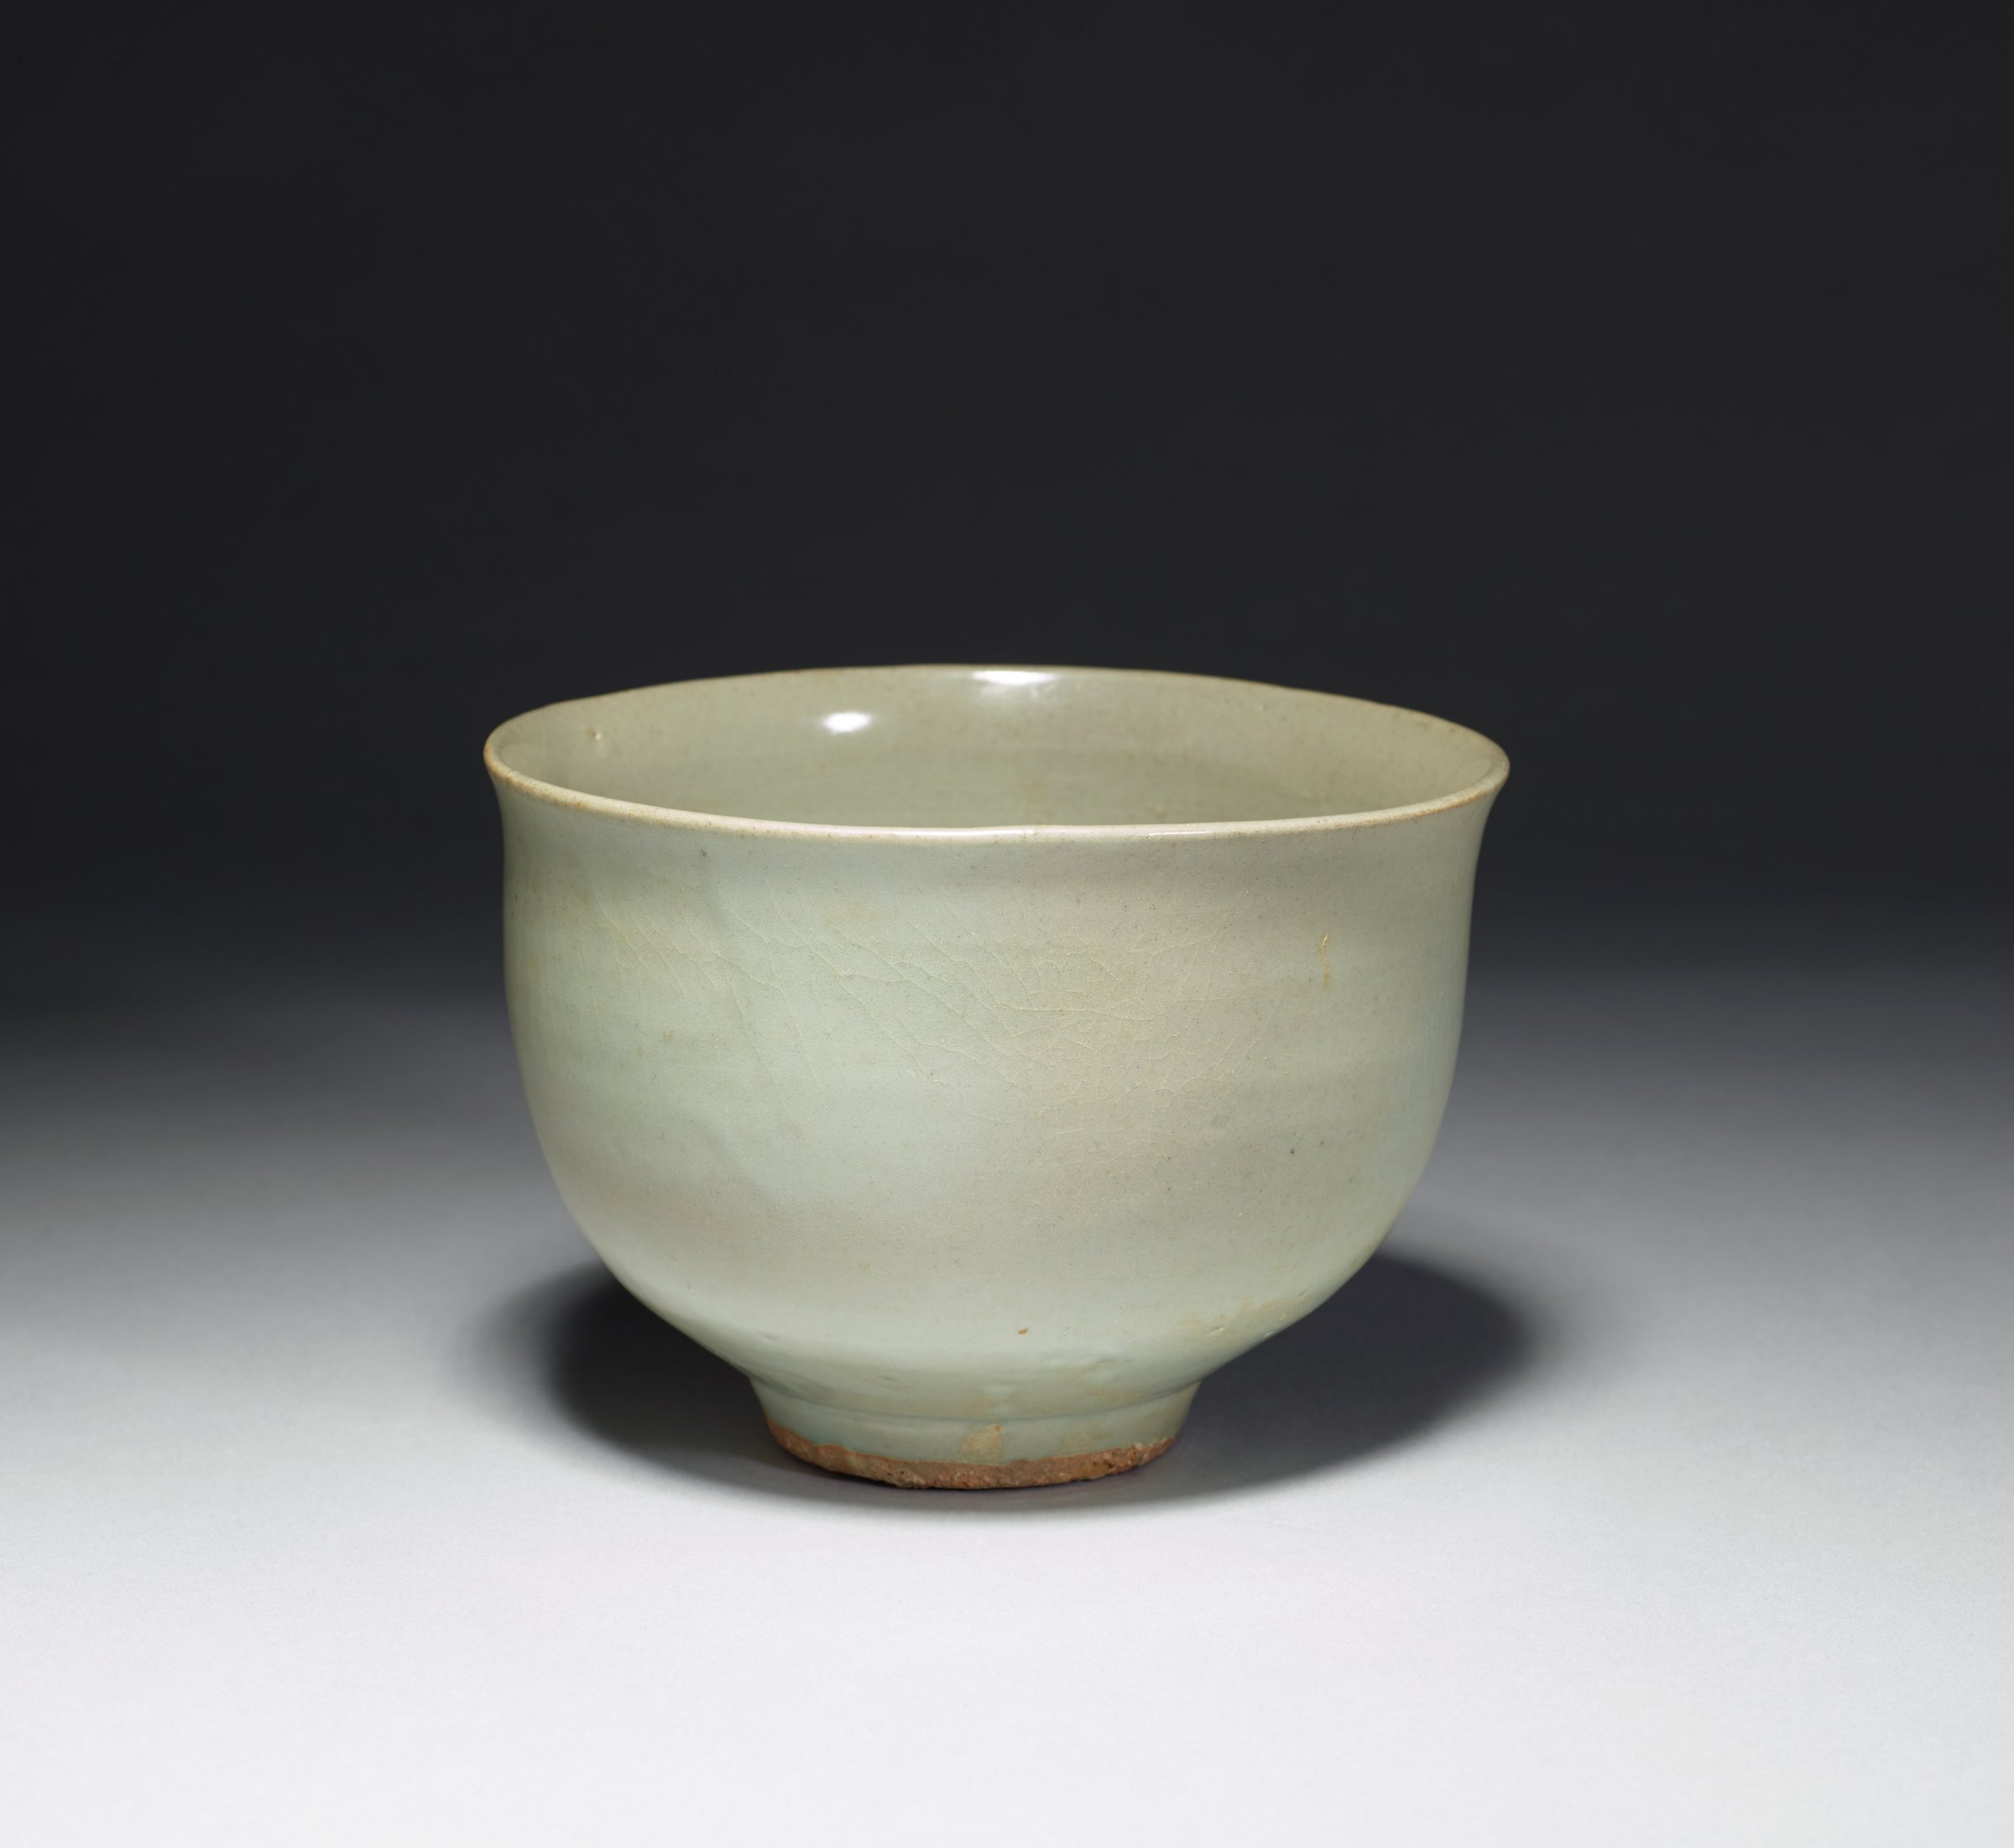 Footed Deep Bowl with Steep Sides and Celadon Glaze